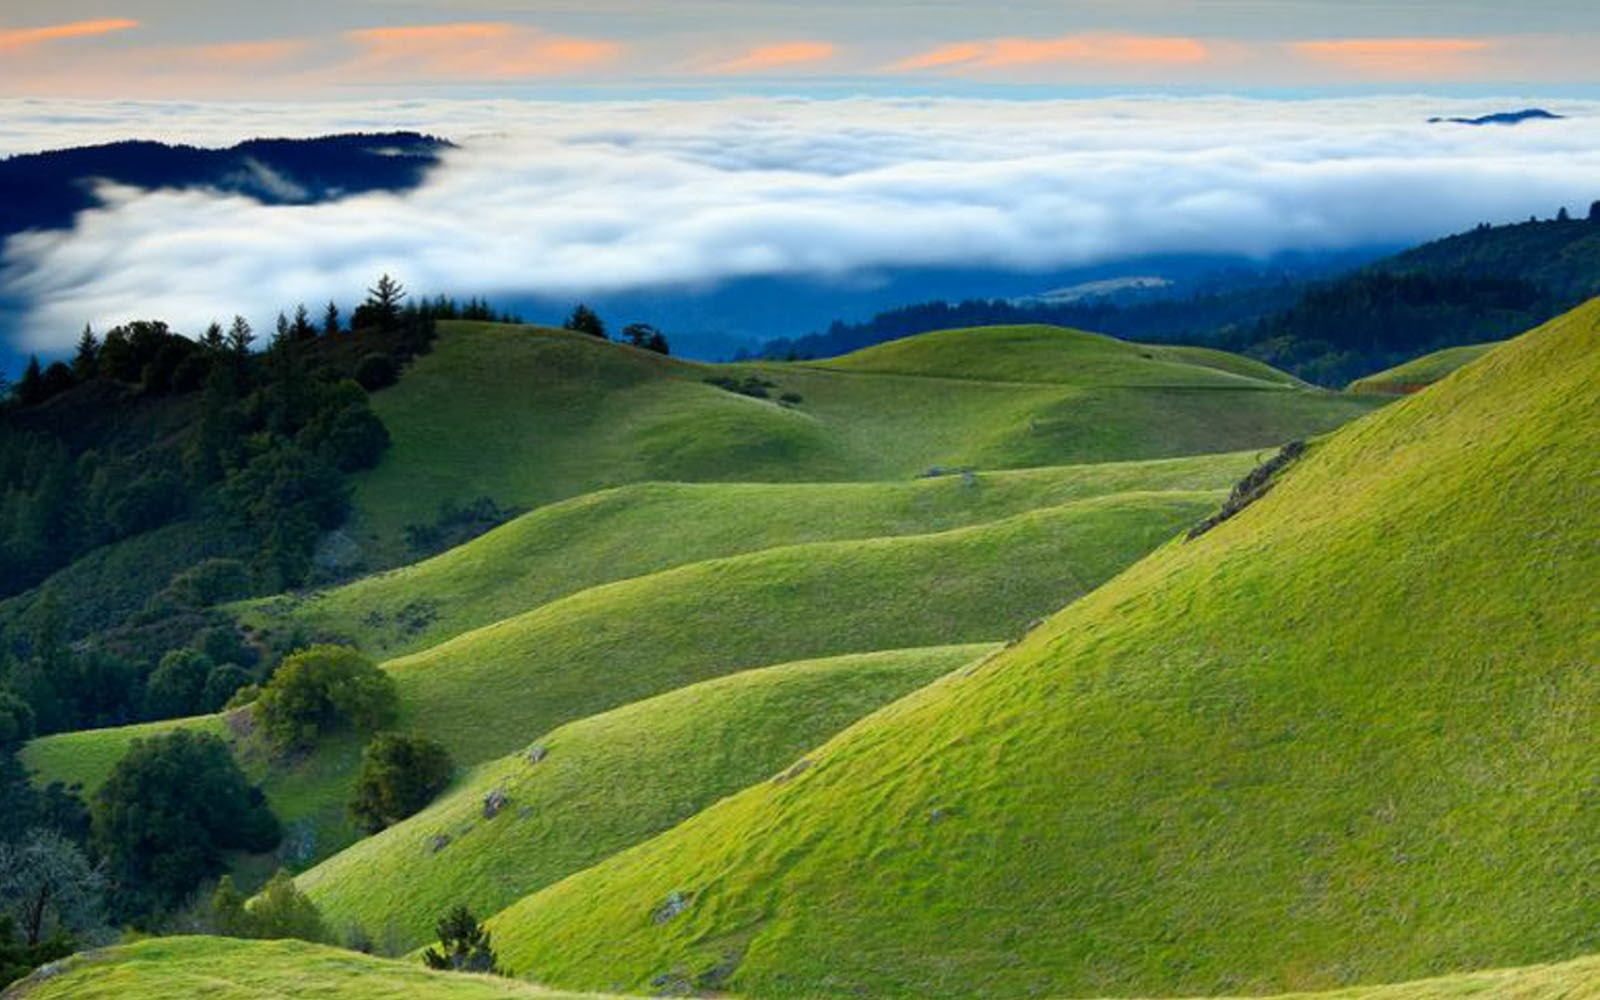 Wallpapers Grassy Hills Wallpapers